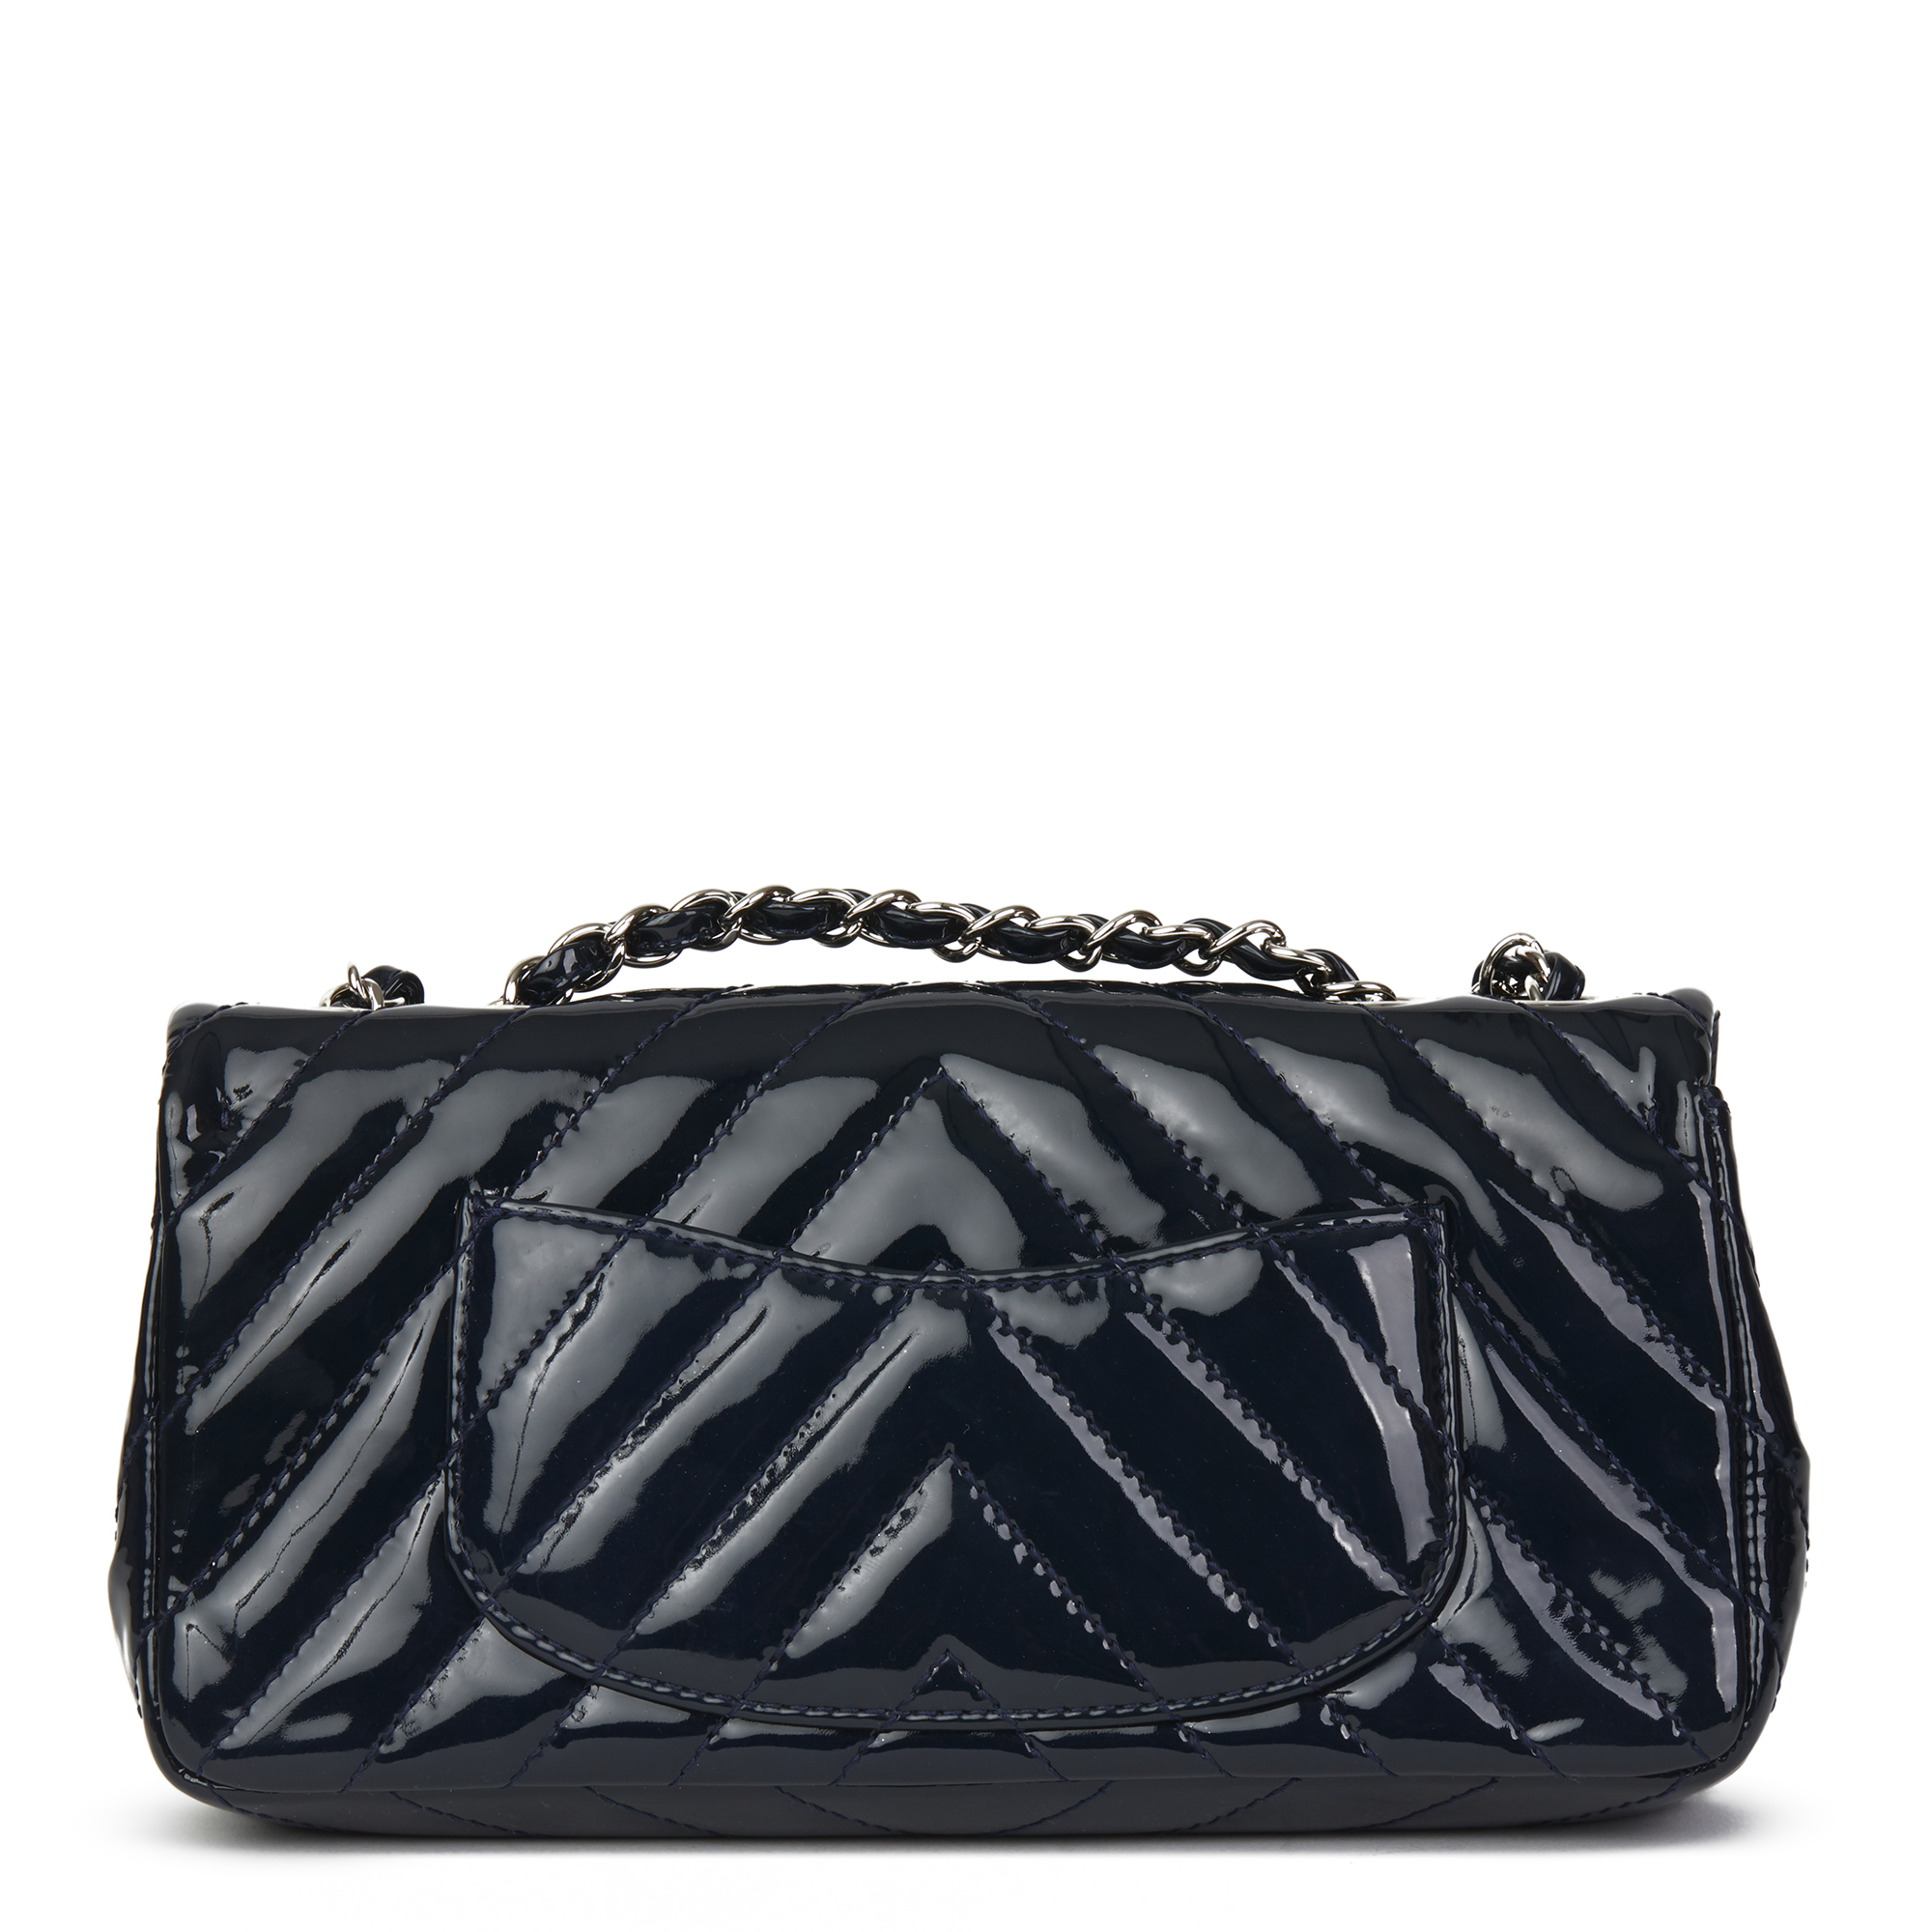 02af553674e179 Details about CHANEL NAVY CHEVRON QUILTED PATENT LEATHER EAST WEST CLASSIC  SINGLE FLAP BAG